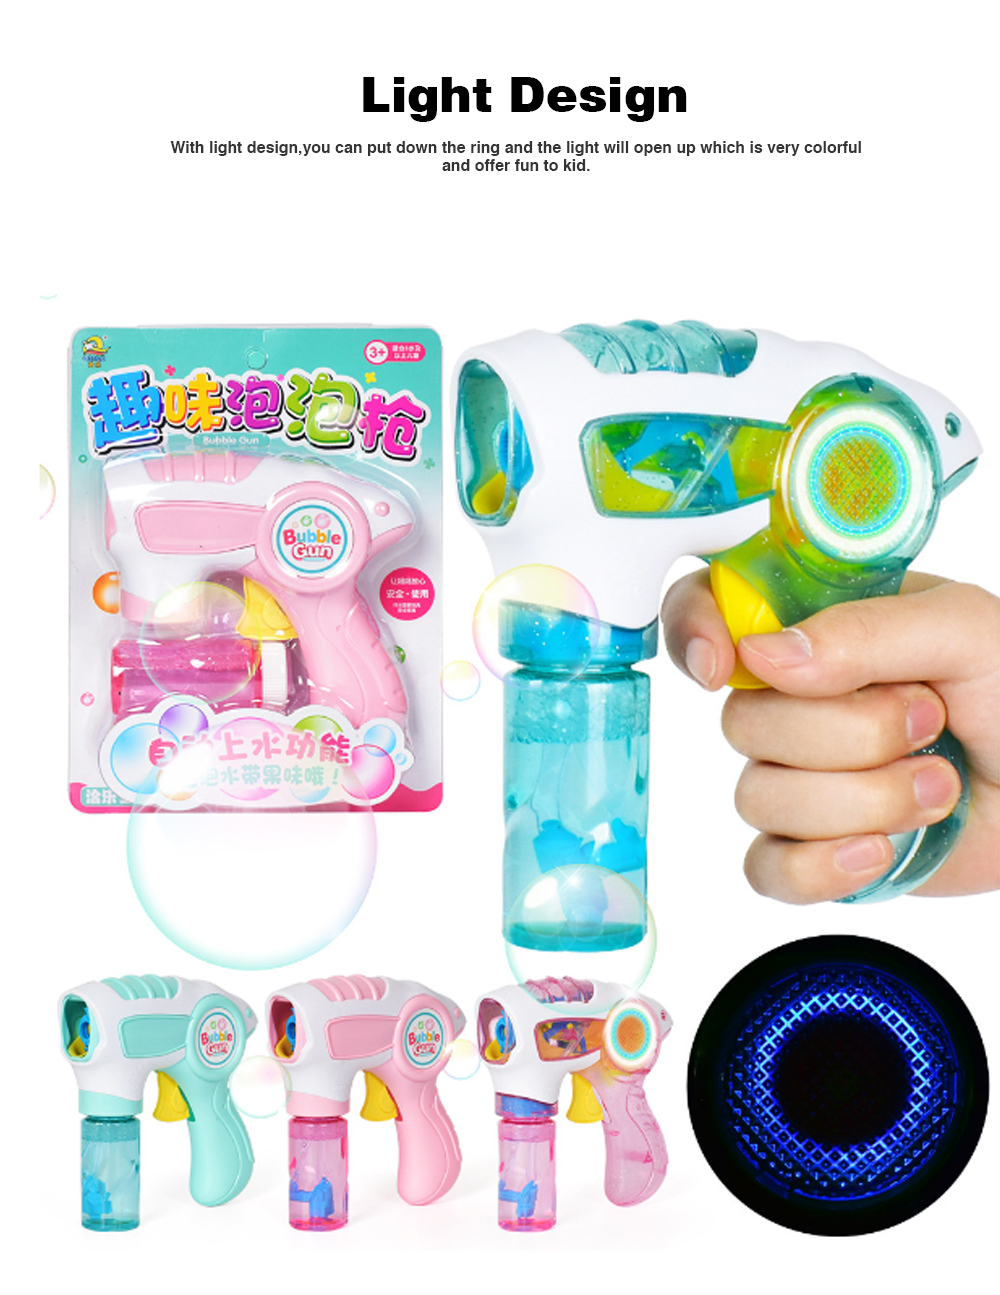 Manual Magical Children's Bubble Gun Toys with Colorful Light for Kids Enjoy Summer Fun 1